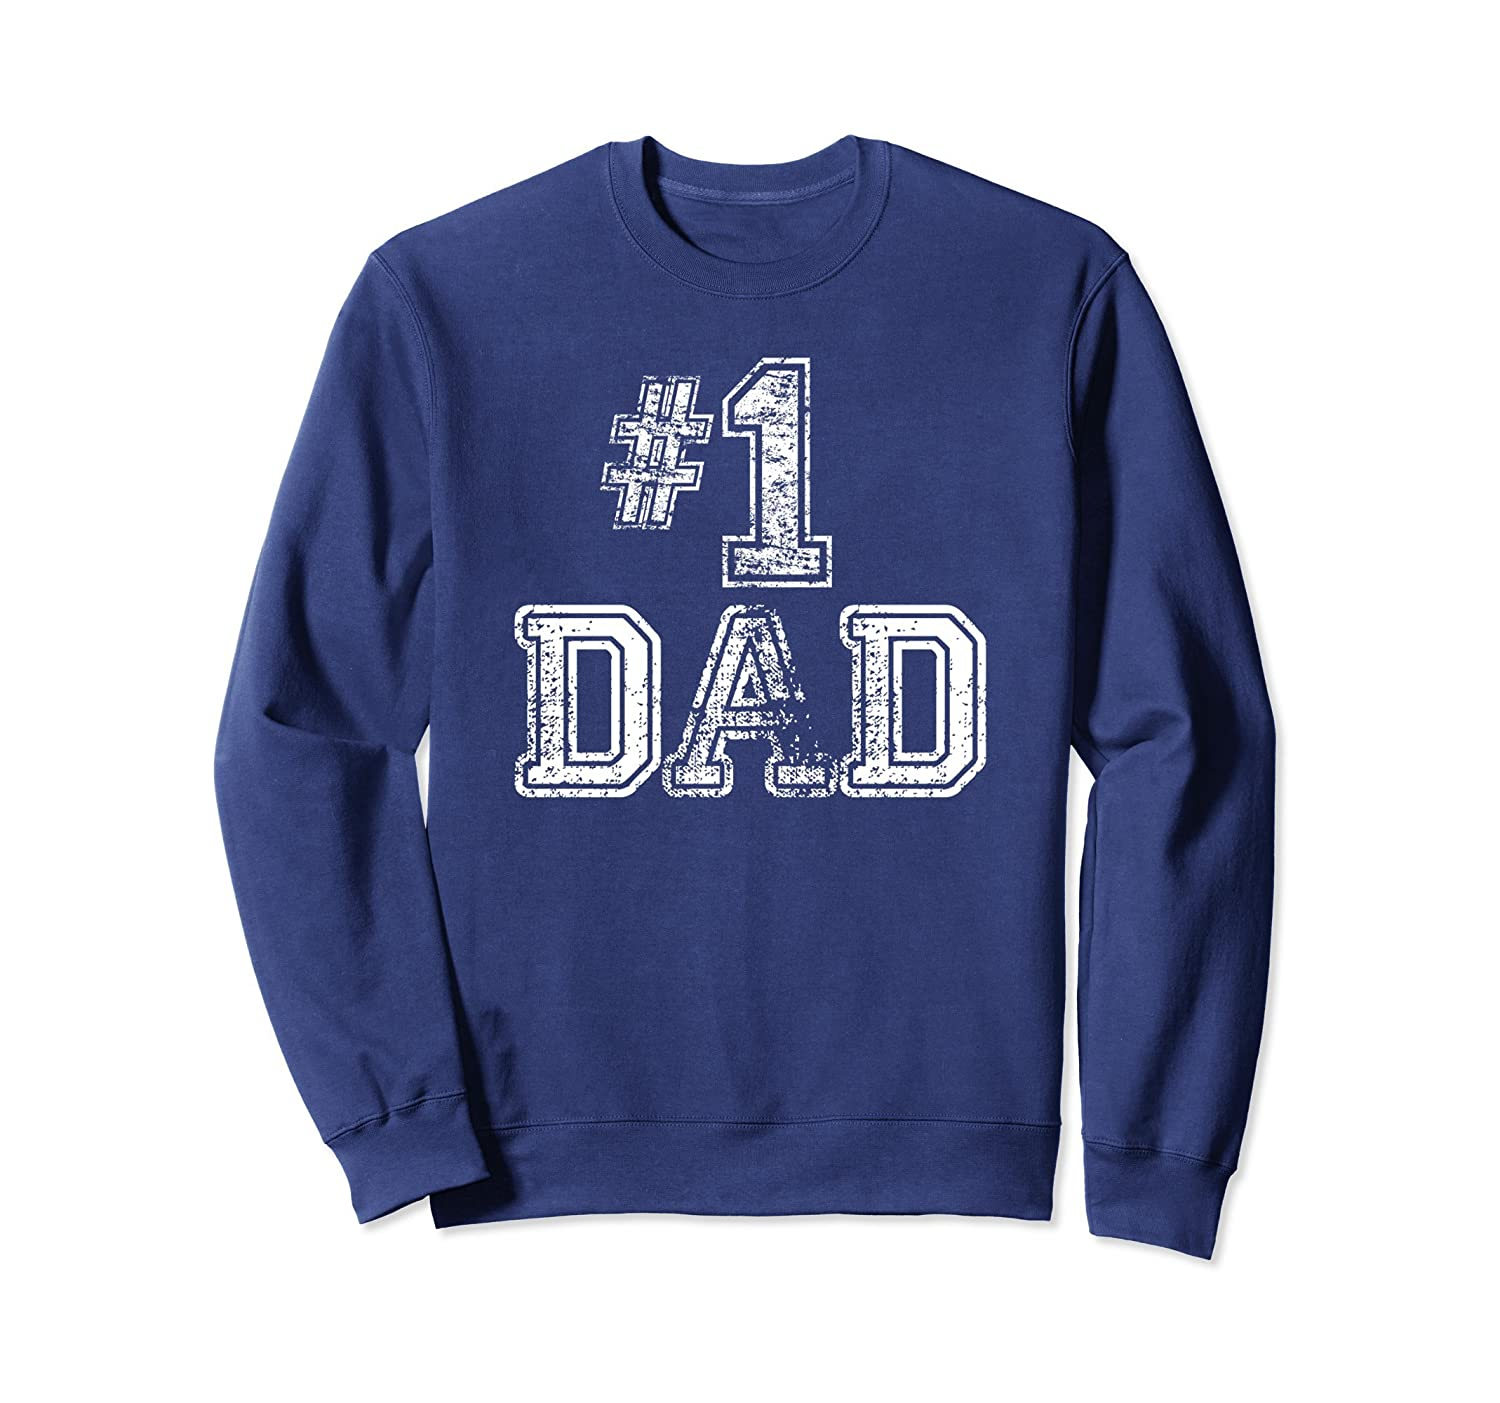 #1 Dad Sweatshirt - Number One Sports Jersey Style-TH